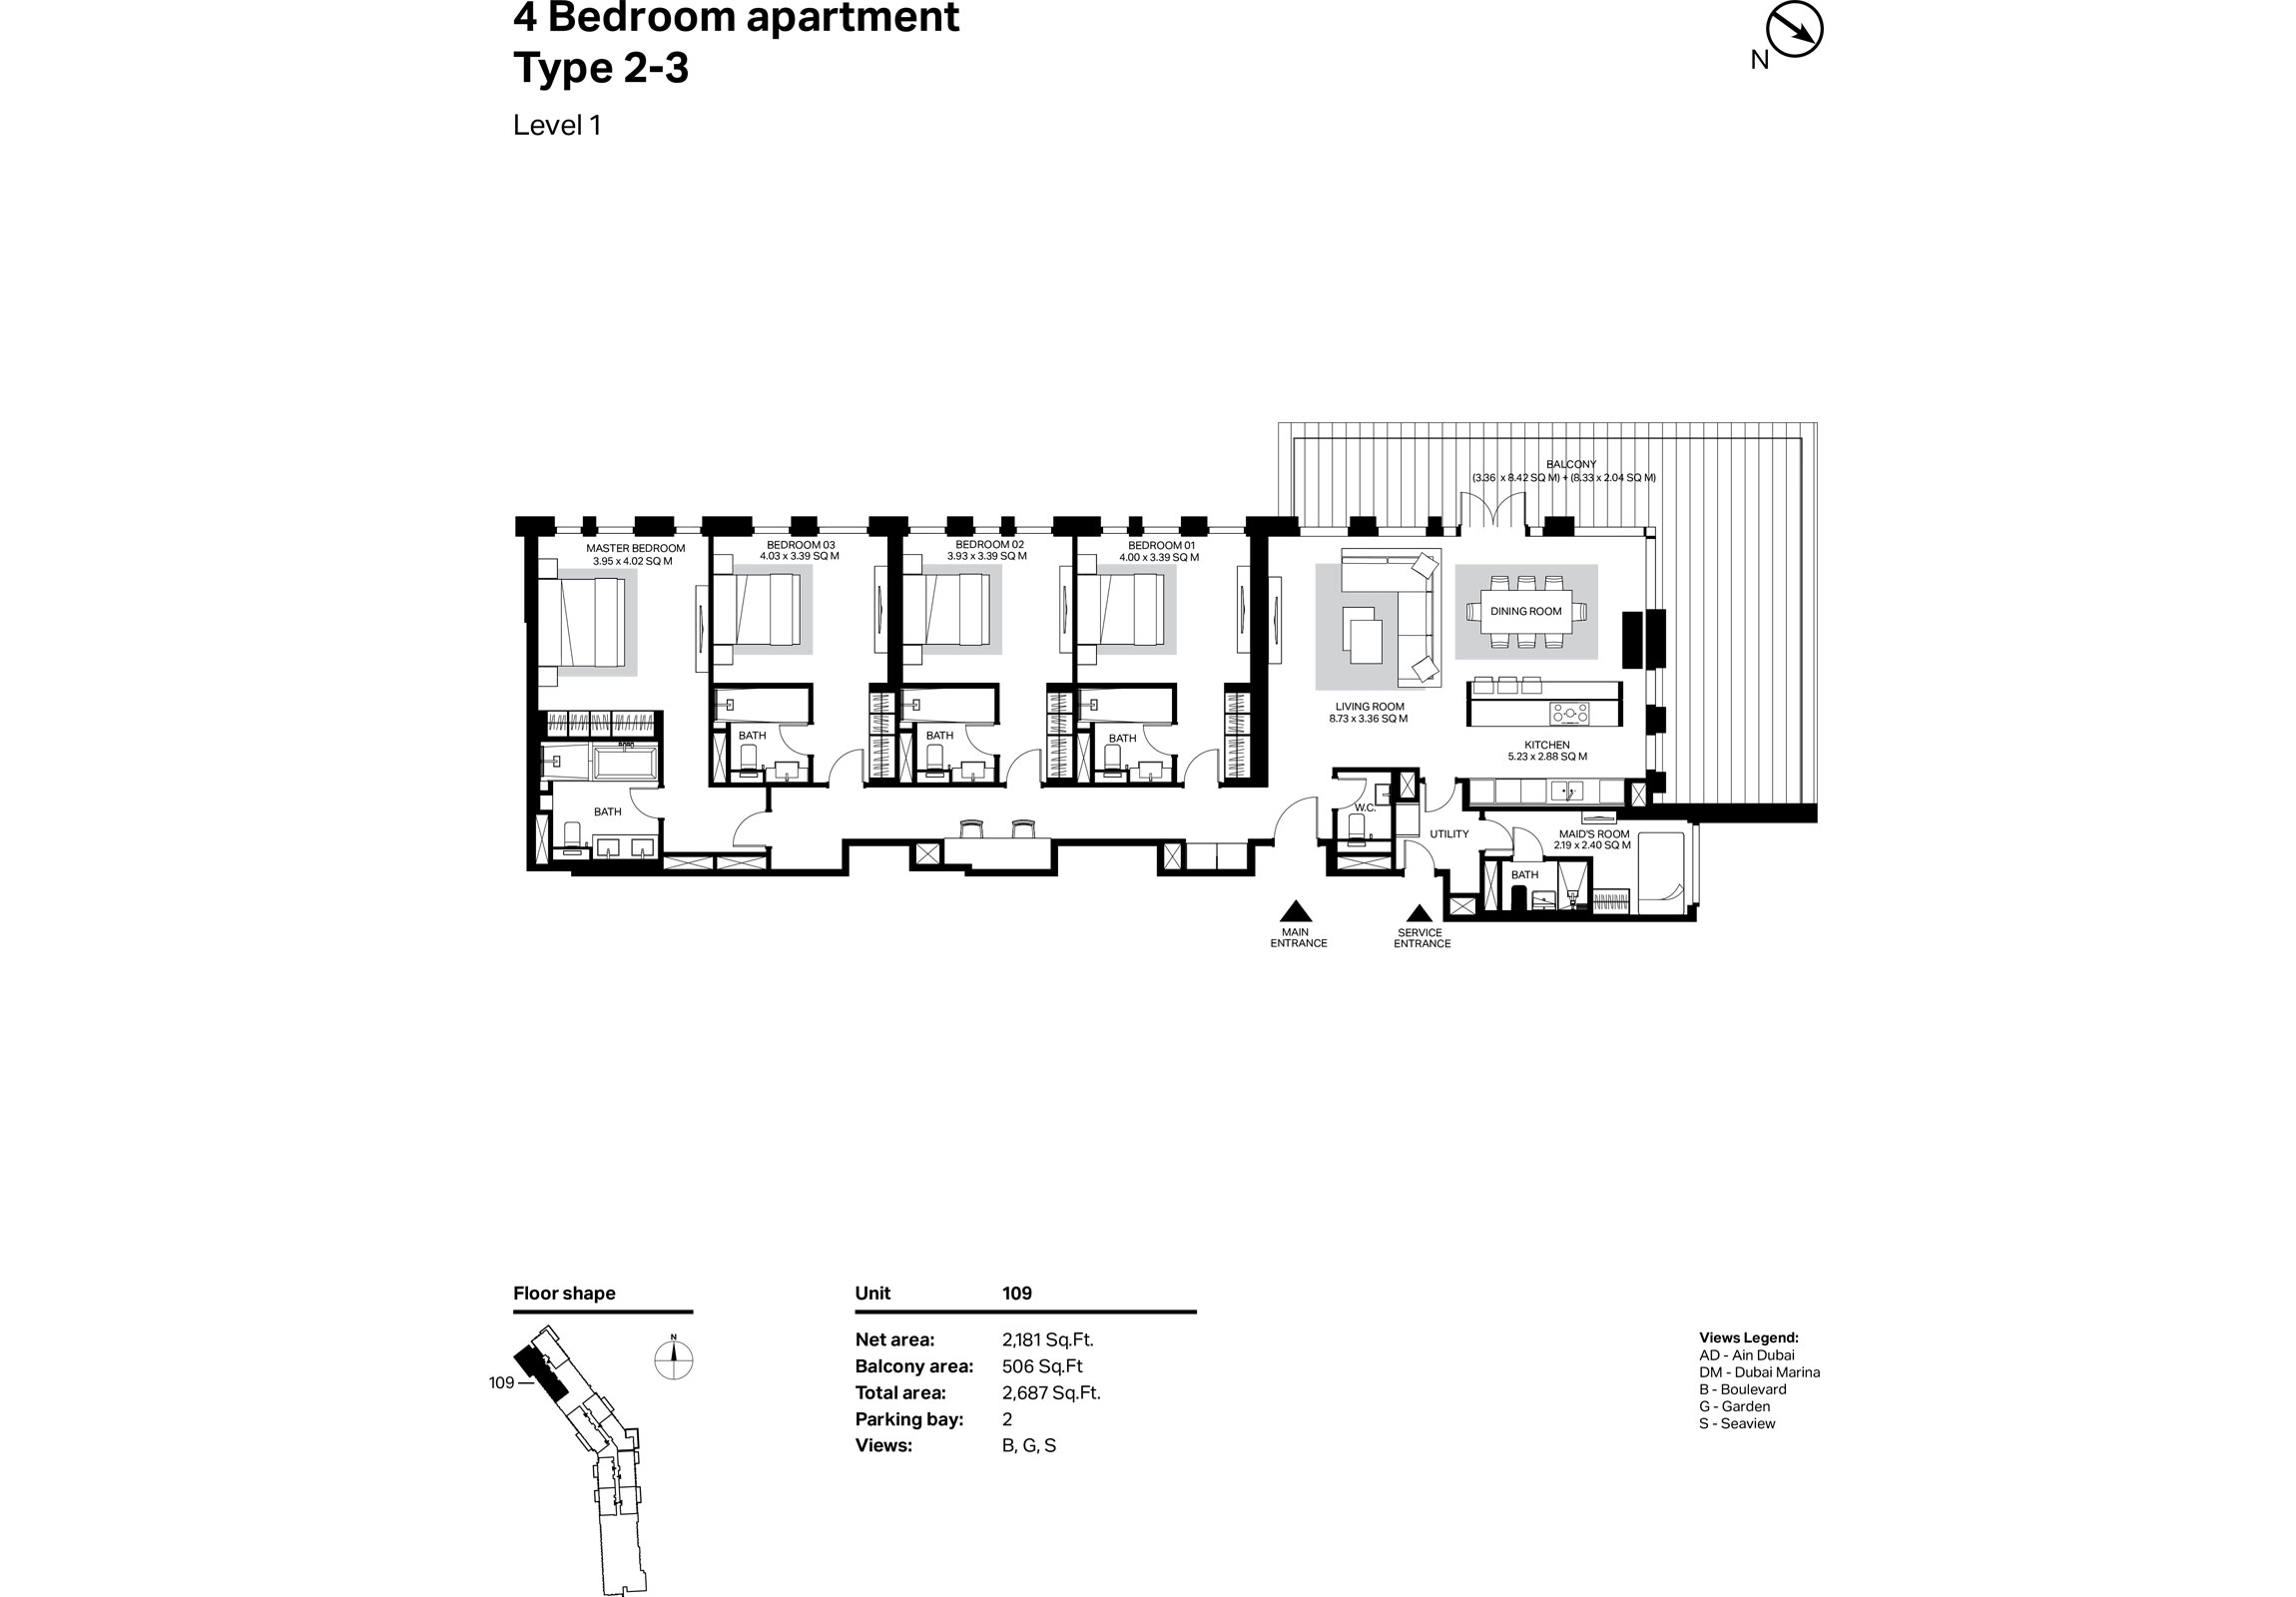 Building 2 - 4 Bedroom Type 2-3 Level 1 Size 2687    sq. ft.